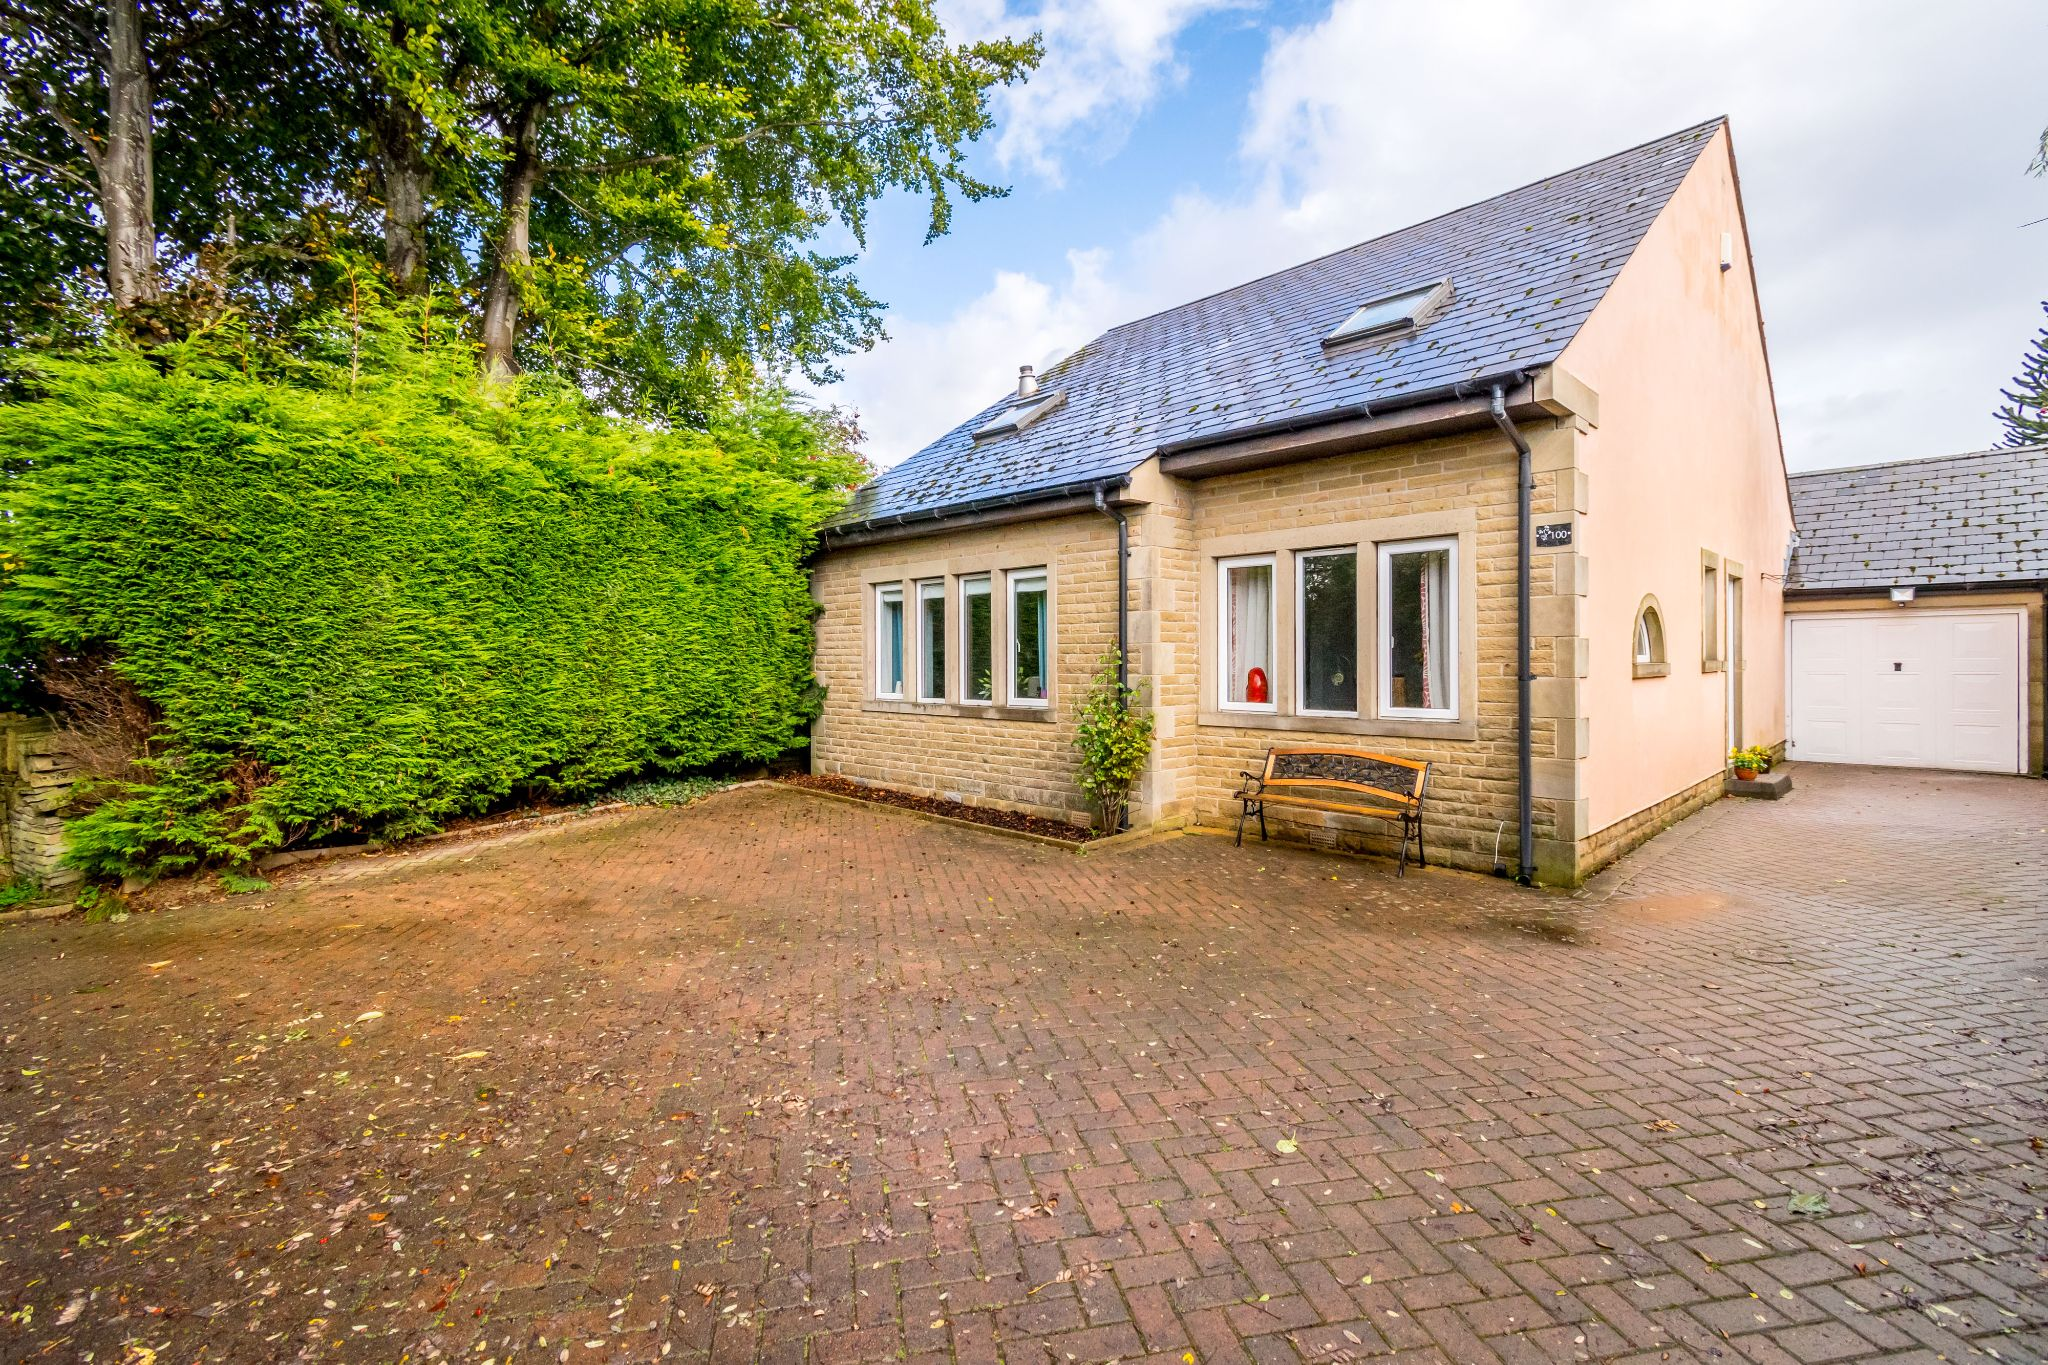 5 bedroom detached house For Sale in Brighouse - Front aspect